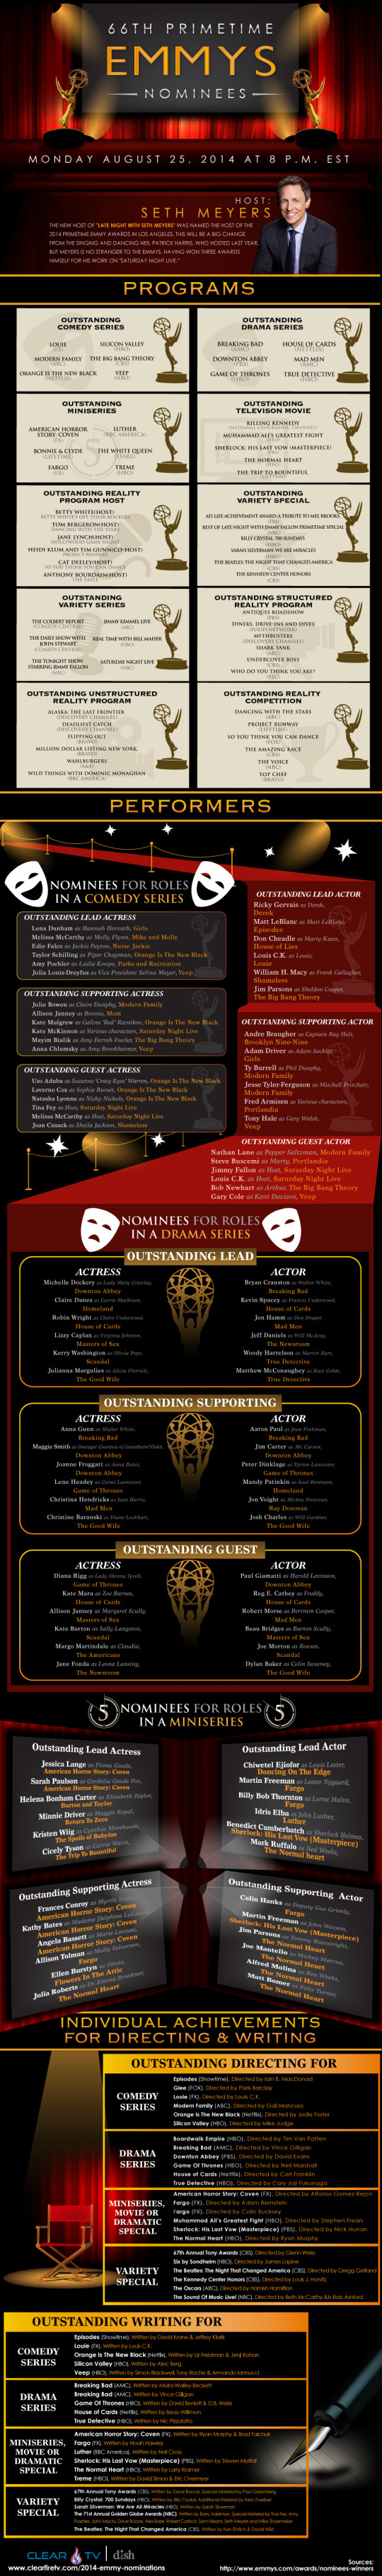 66th Annual Emmy Nominees